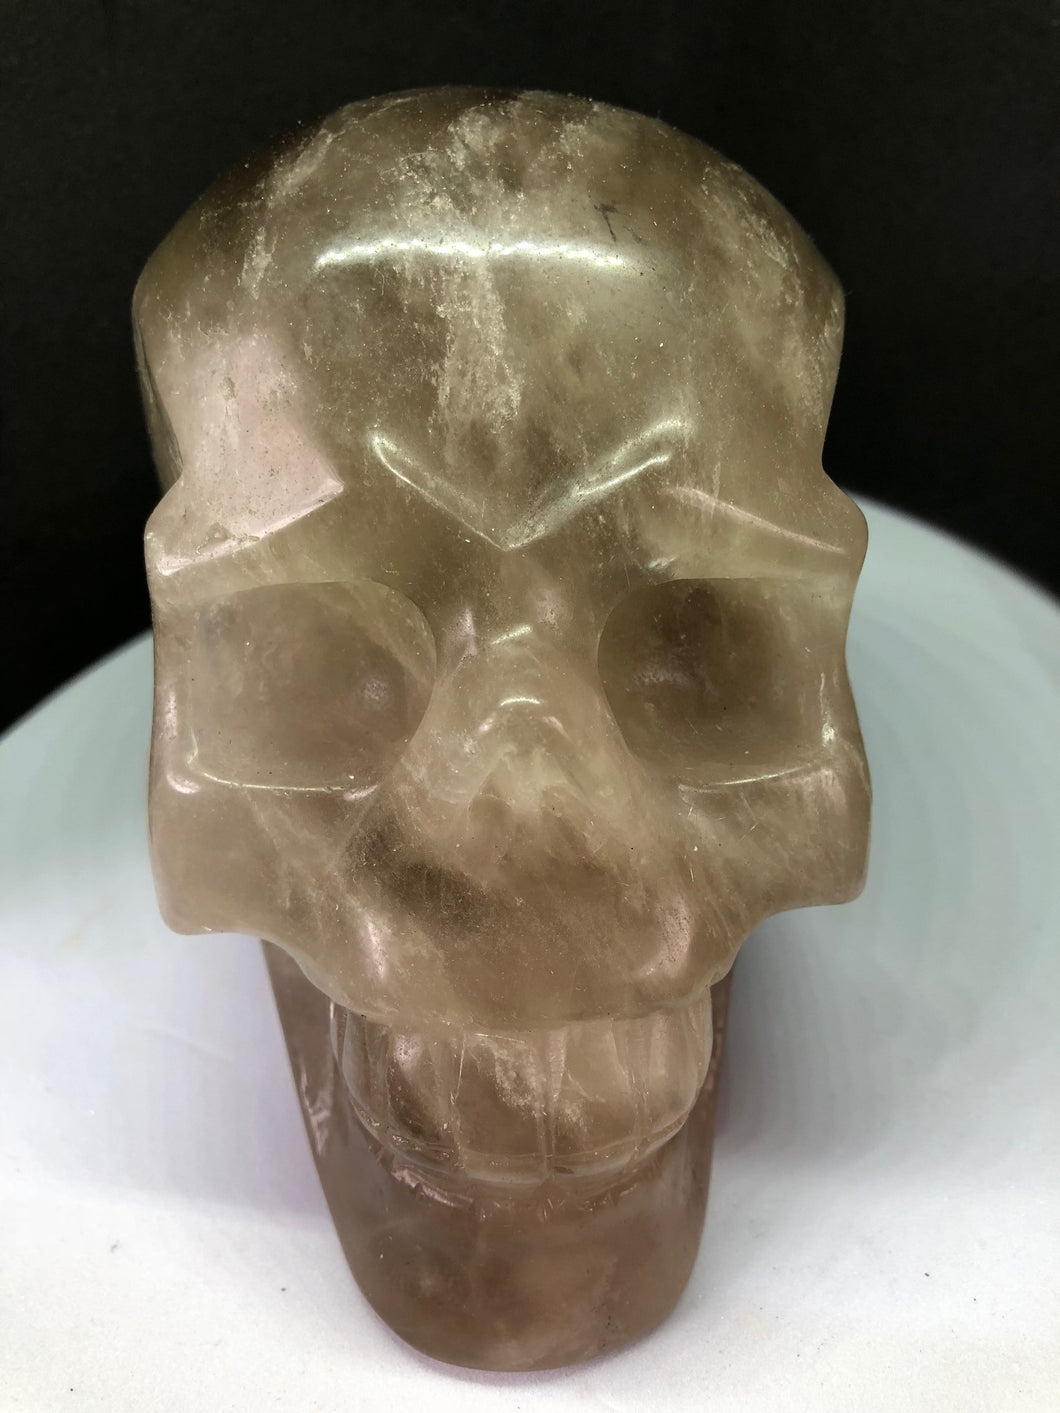 Large Smokey Quartz Crystal Skull Carvings Reiki Healing, Carvings, - Goddess Stone